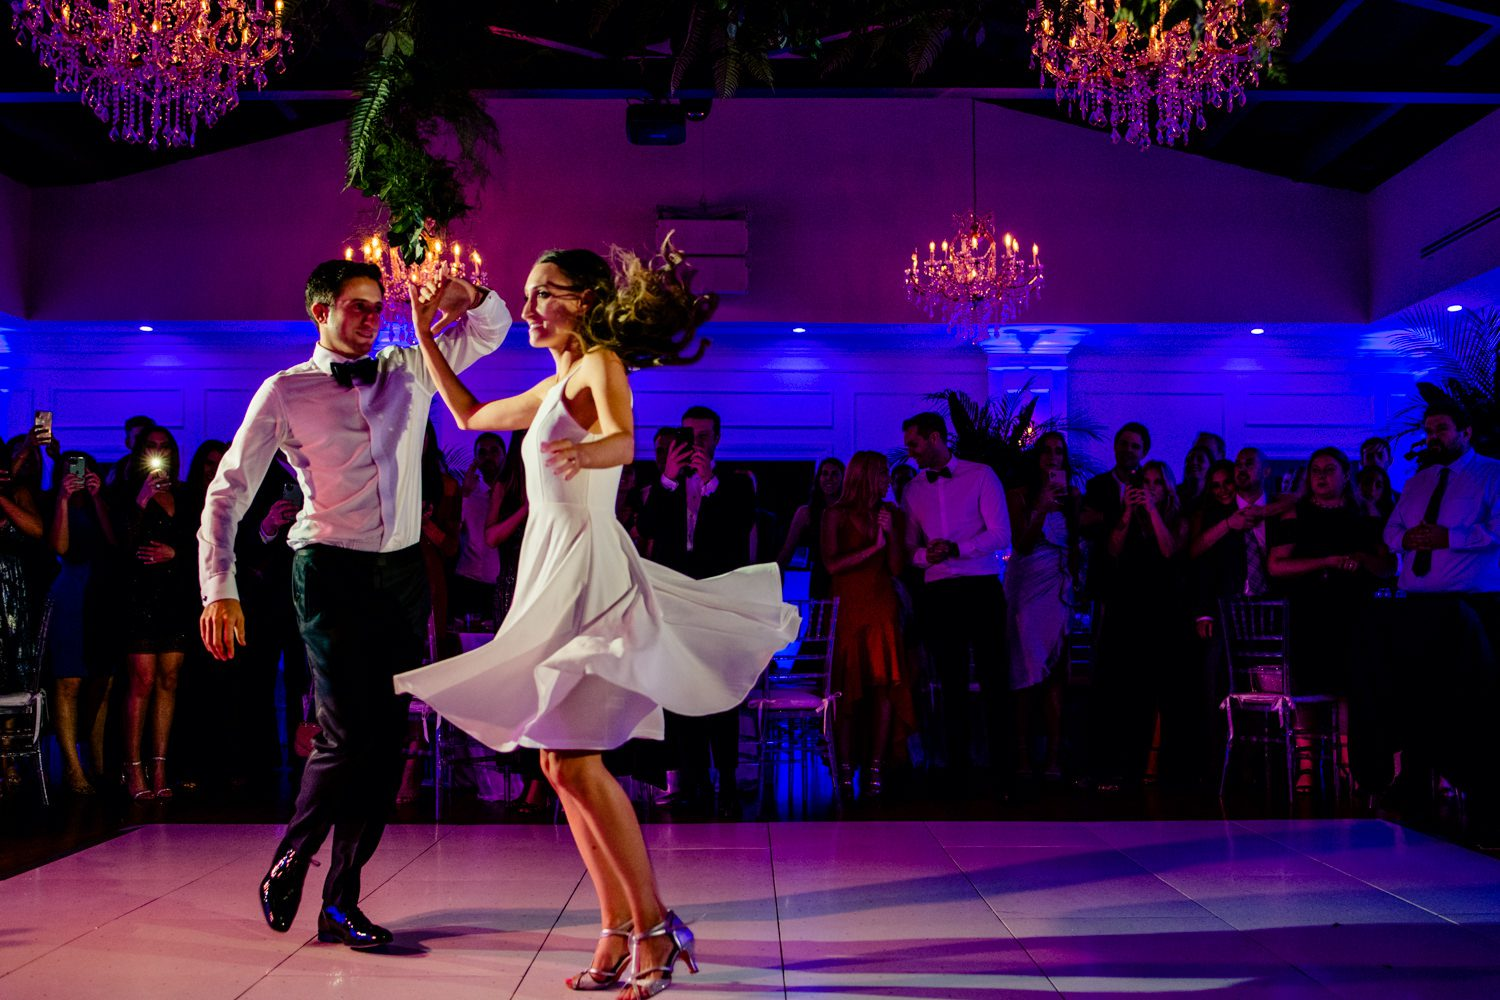 Groom twirling his bride while dancing at their miami wedding